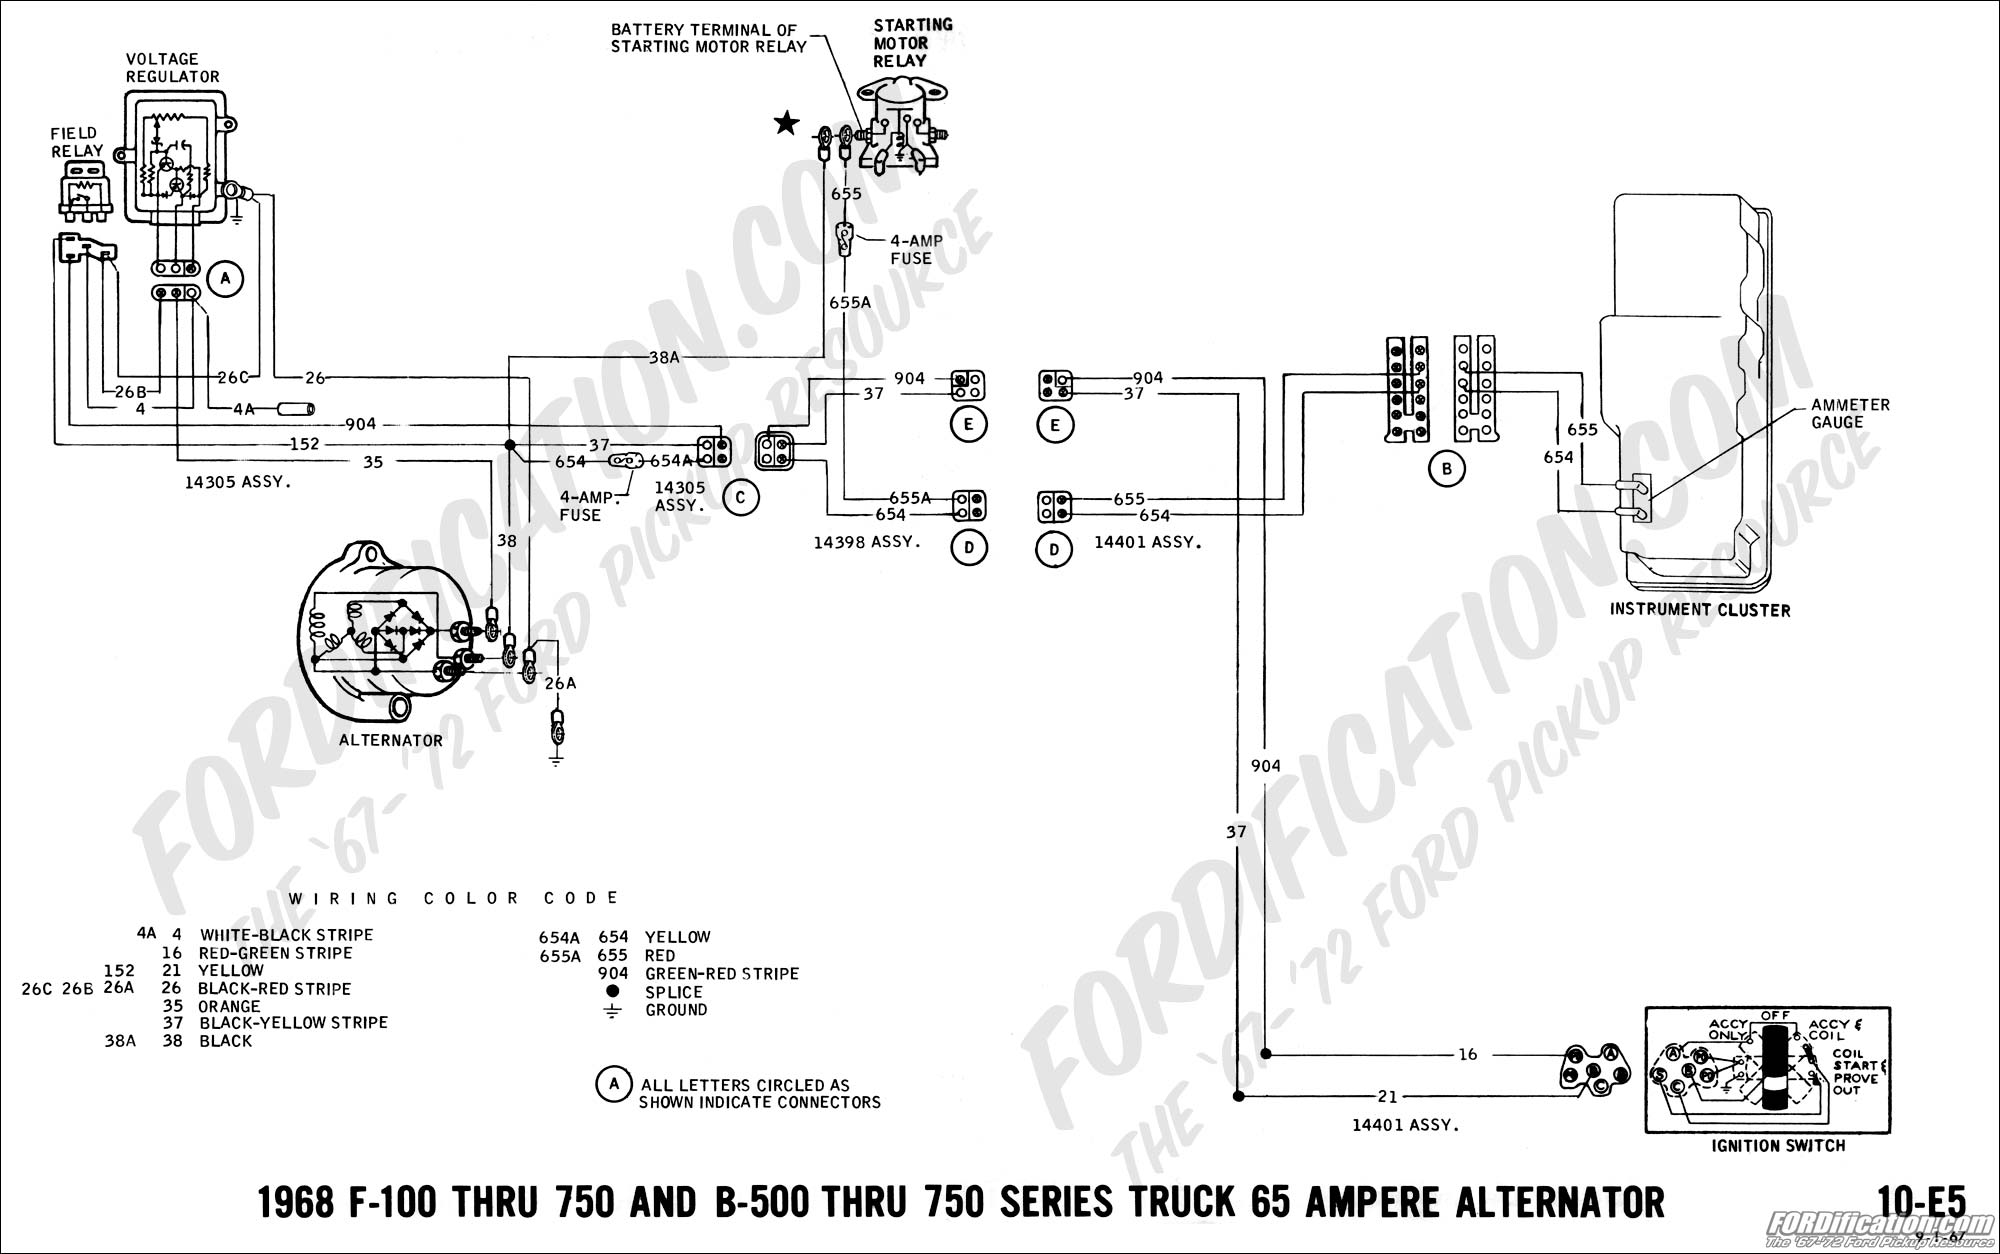 68 07 ford truck technical drawings and schematics section h wiring 1971 ford f250 wiring diagram at metegol.co